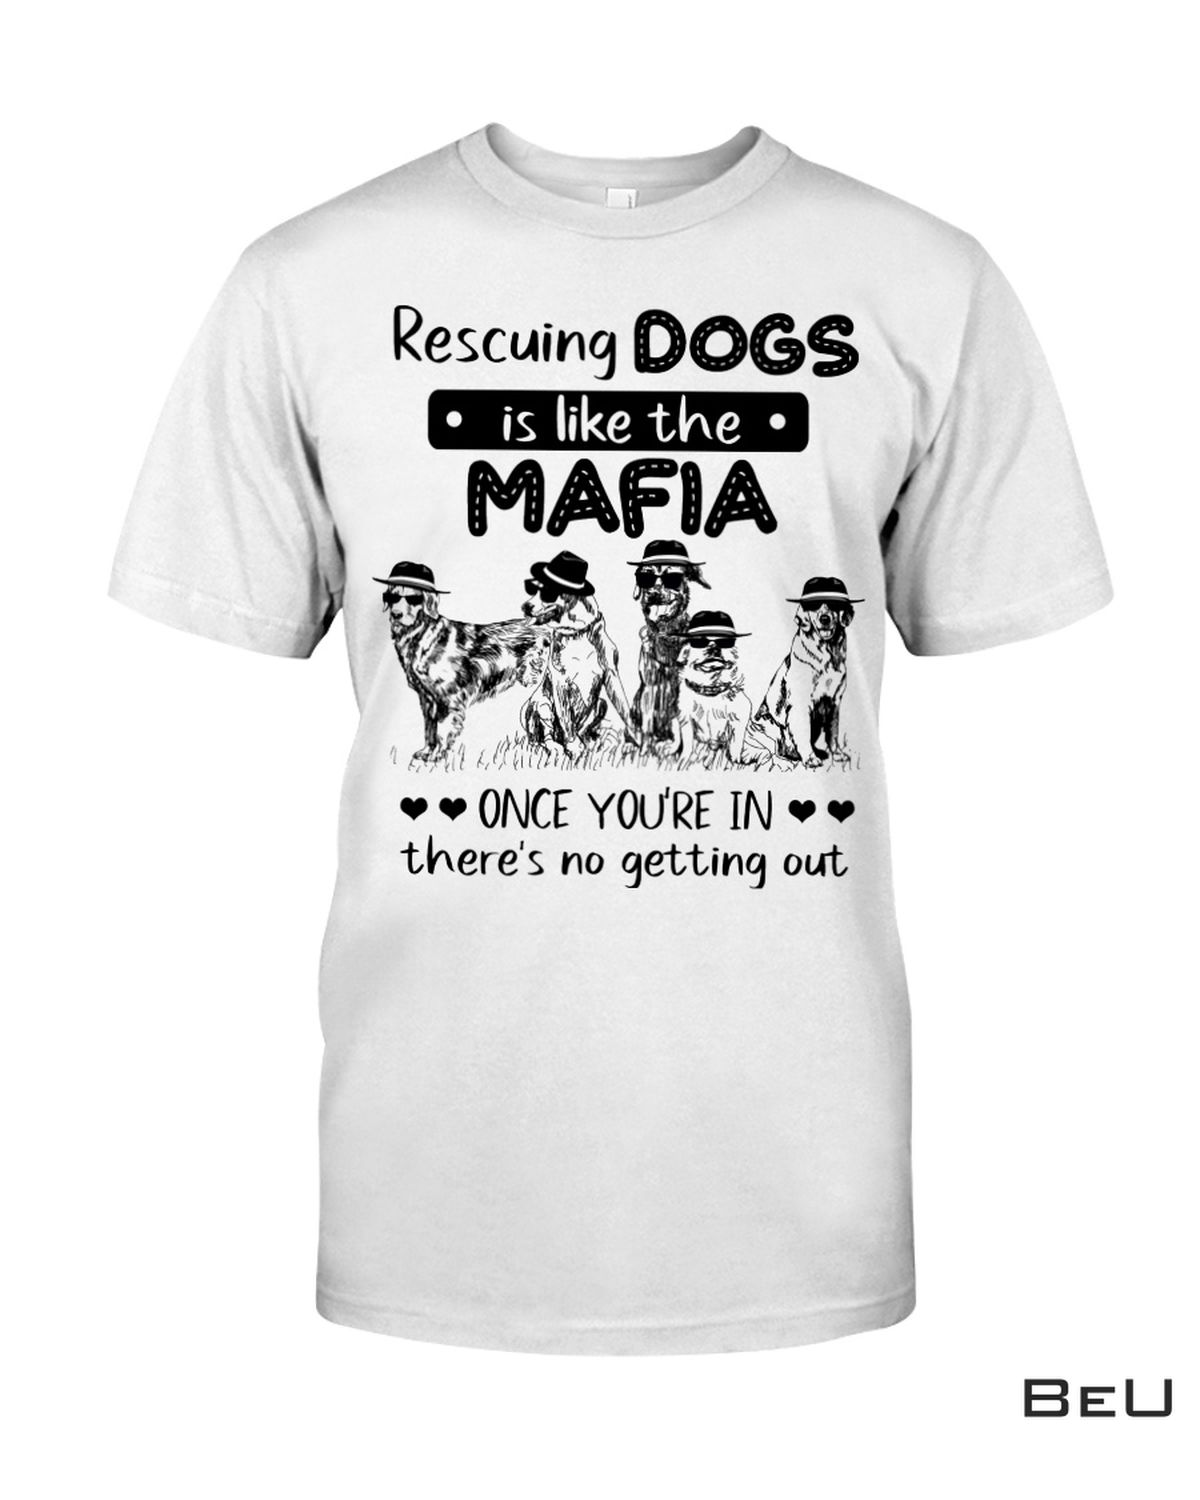 Rescuing Dogs Is Like The Mafia Shirt, hoodie, tank top